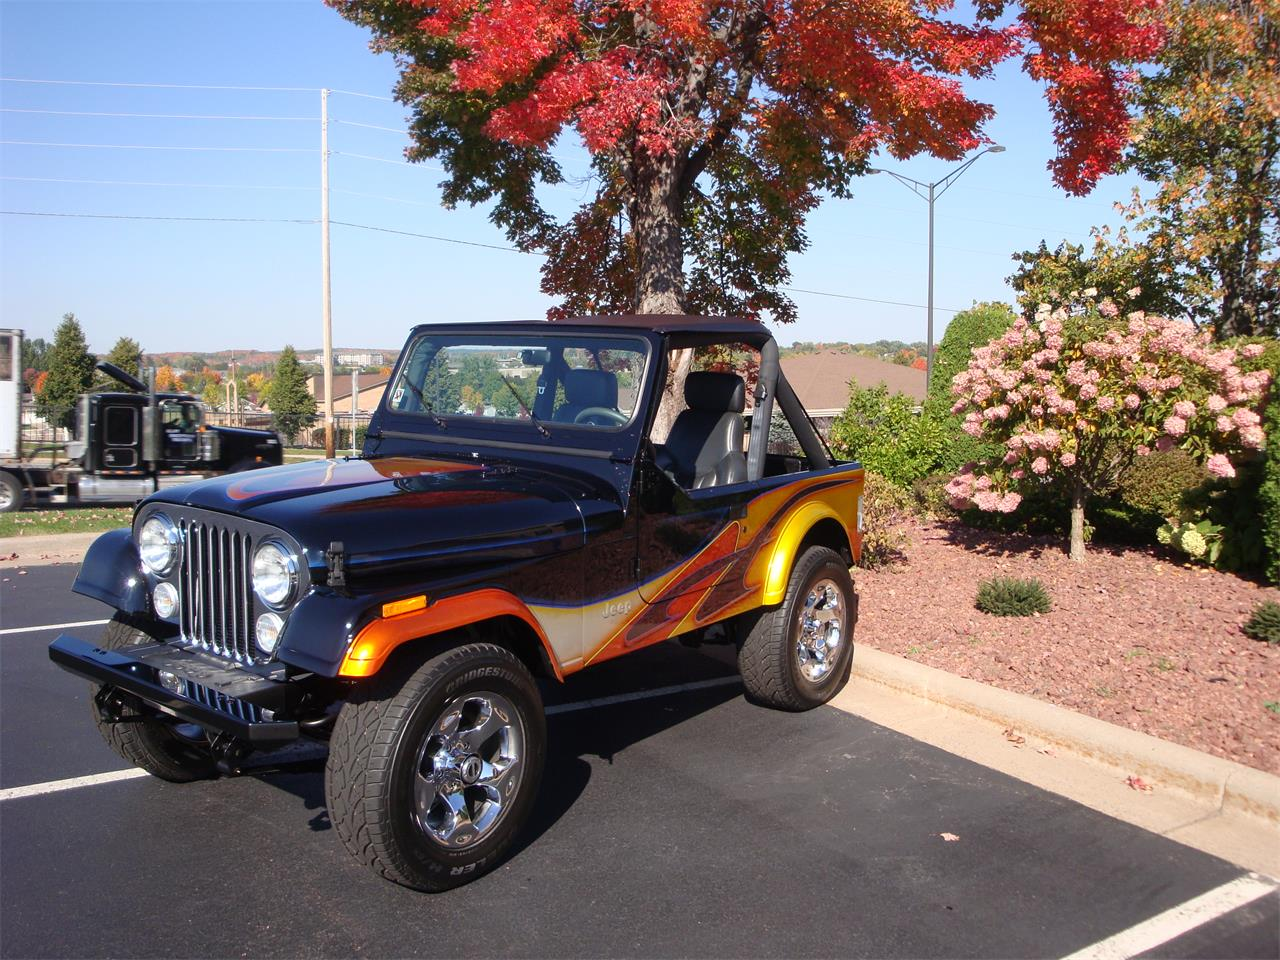 Large Picture of '83 Jeep CJ7 located in Wisconsin Offered by a Private Seller - KPJM